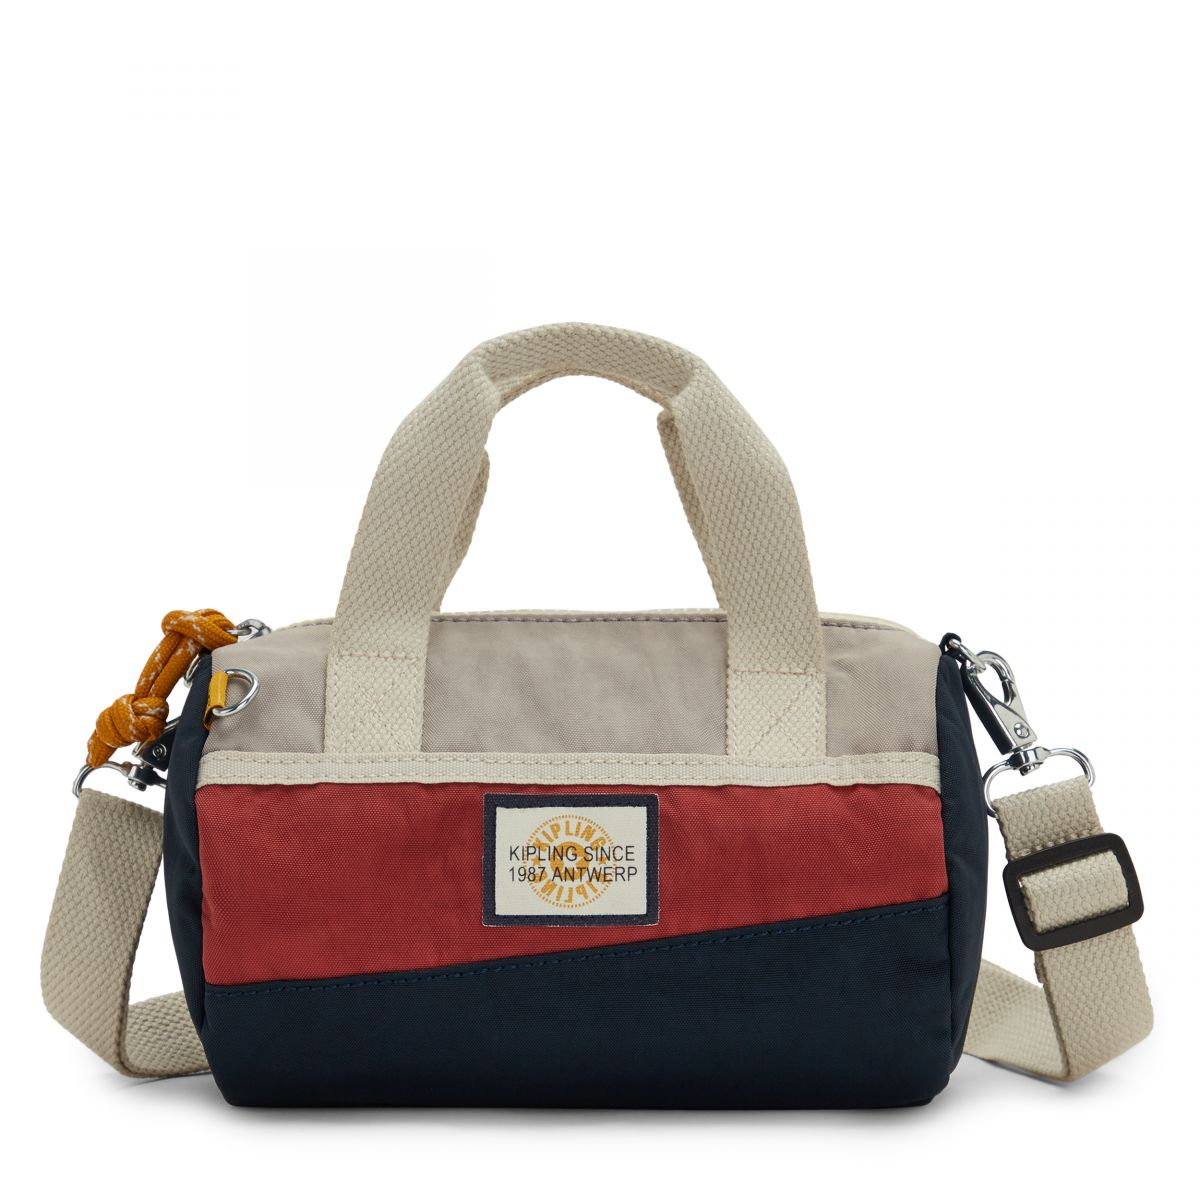 QUAN BAGS by Kipling - Front view